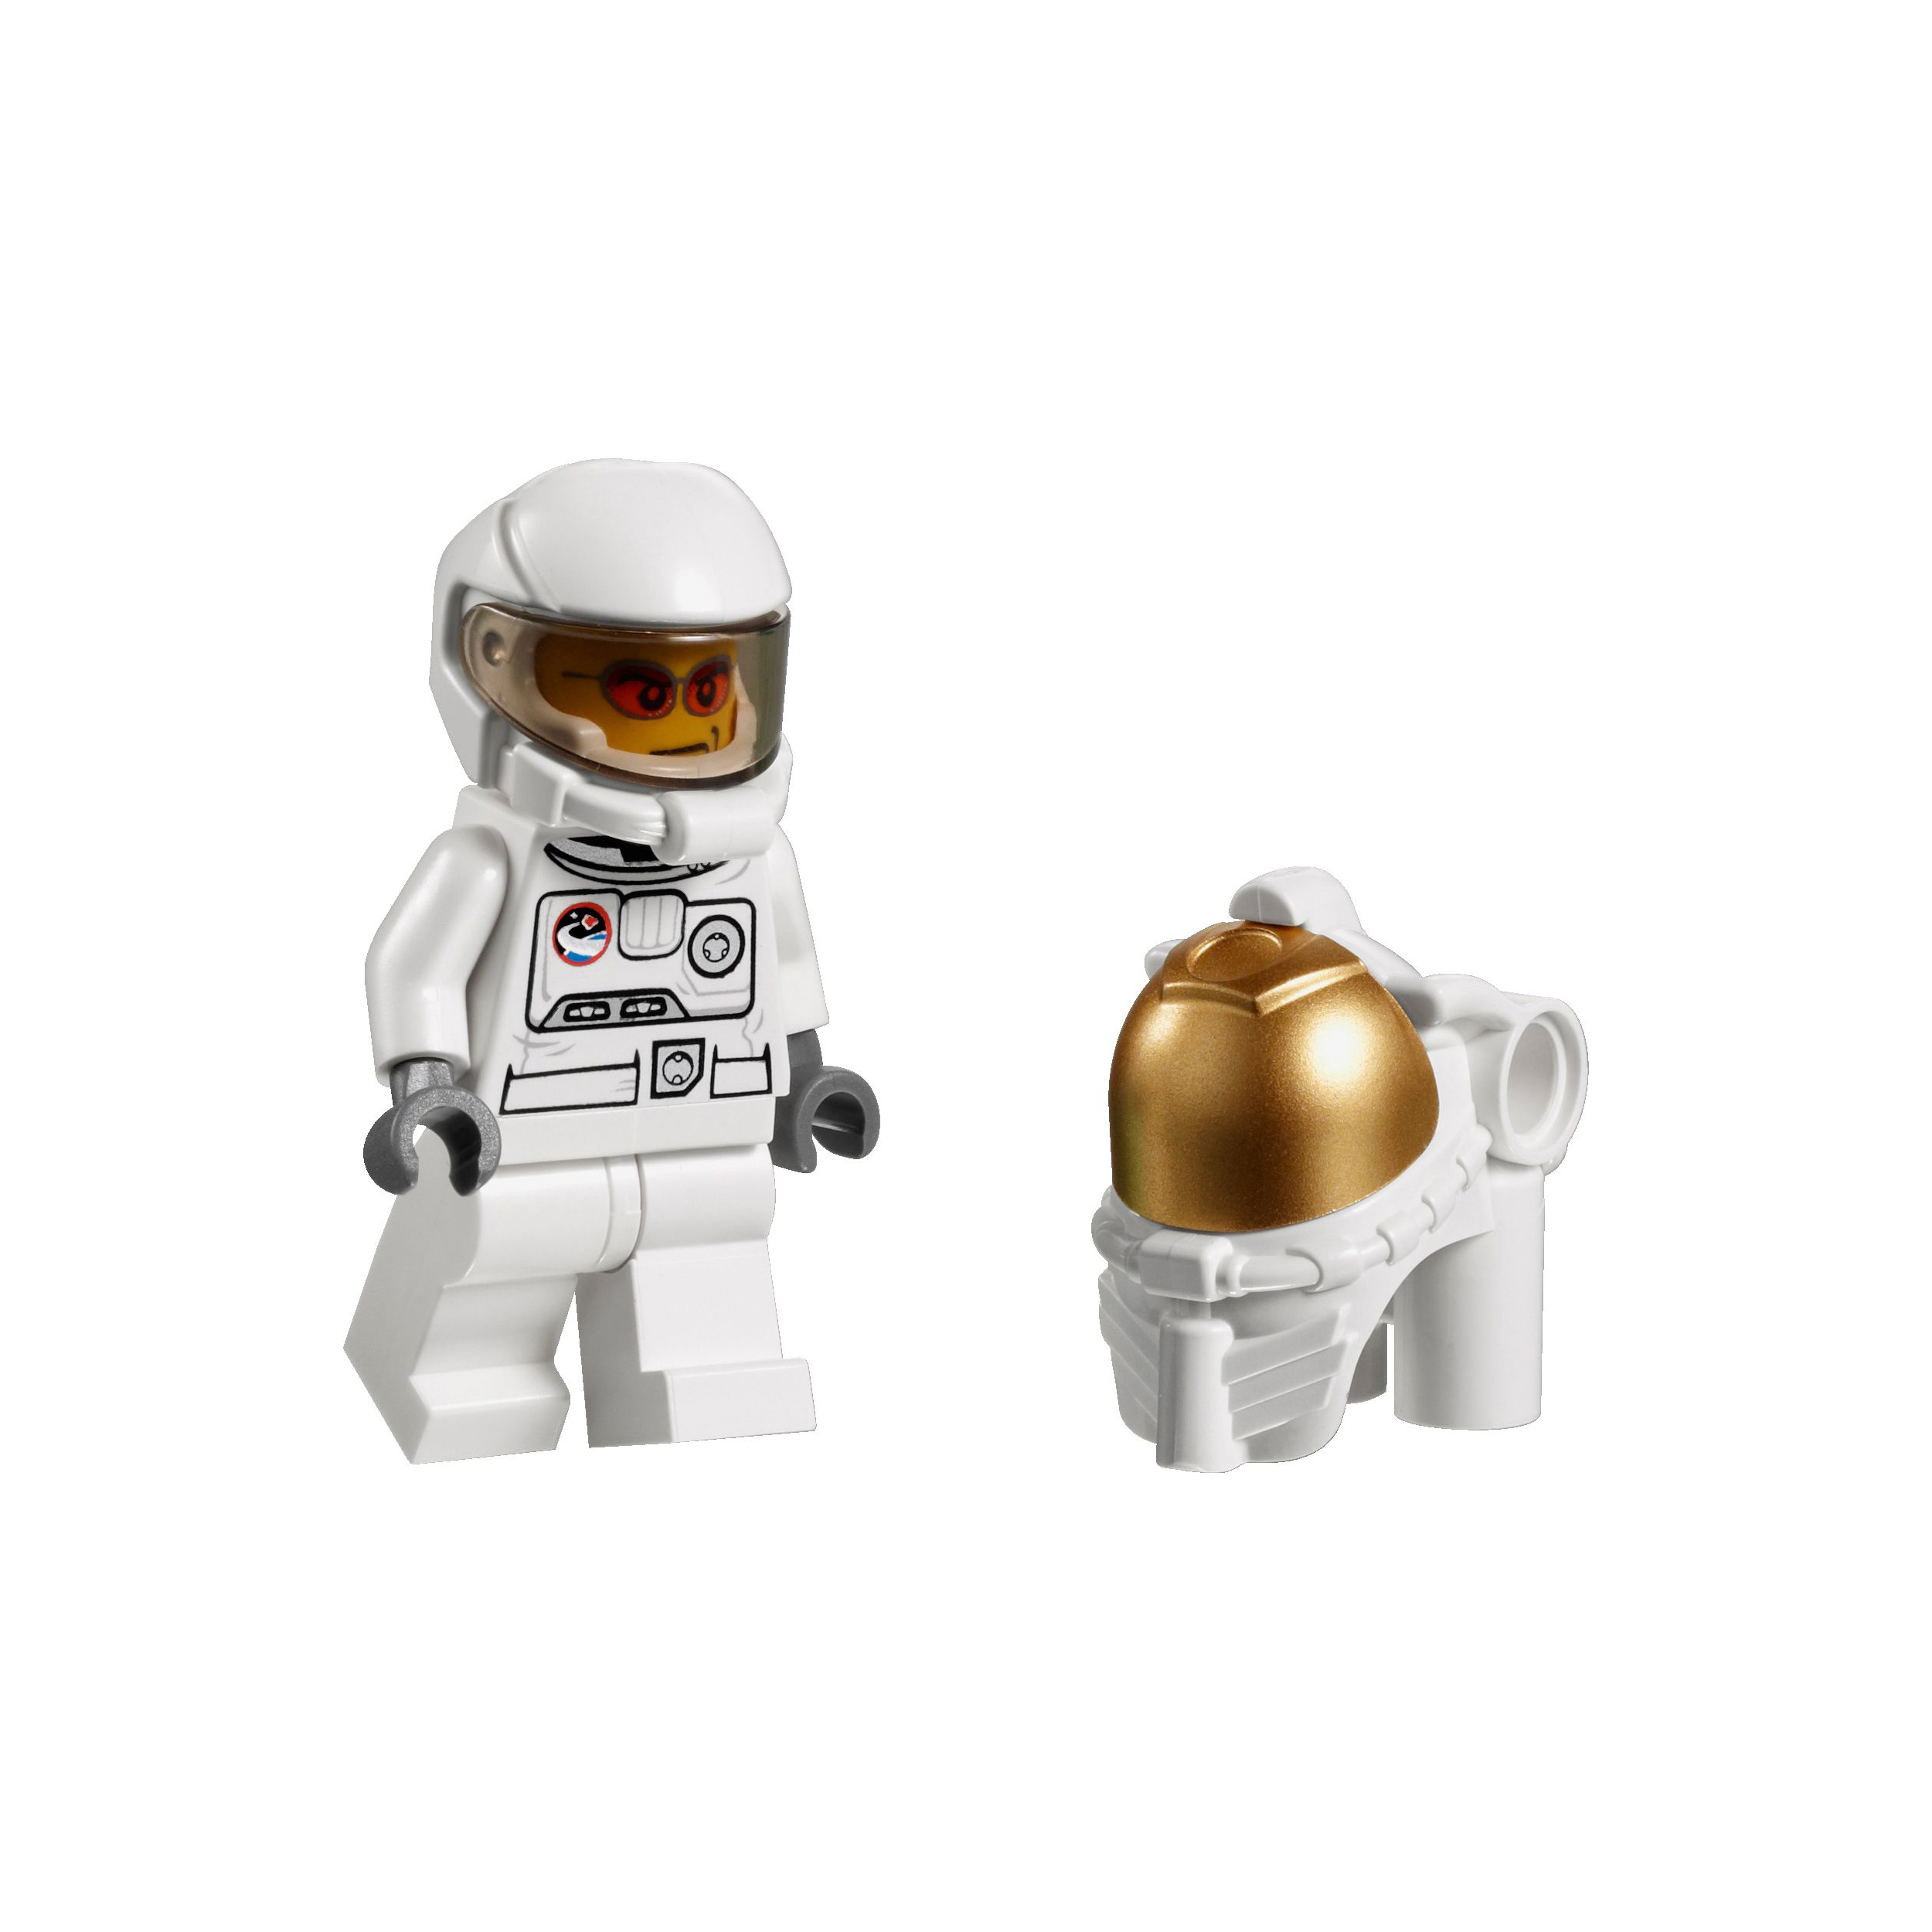 i_3367_minifigure_1_hr.jpg